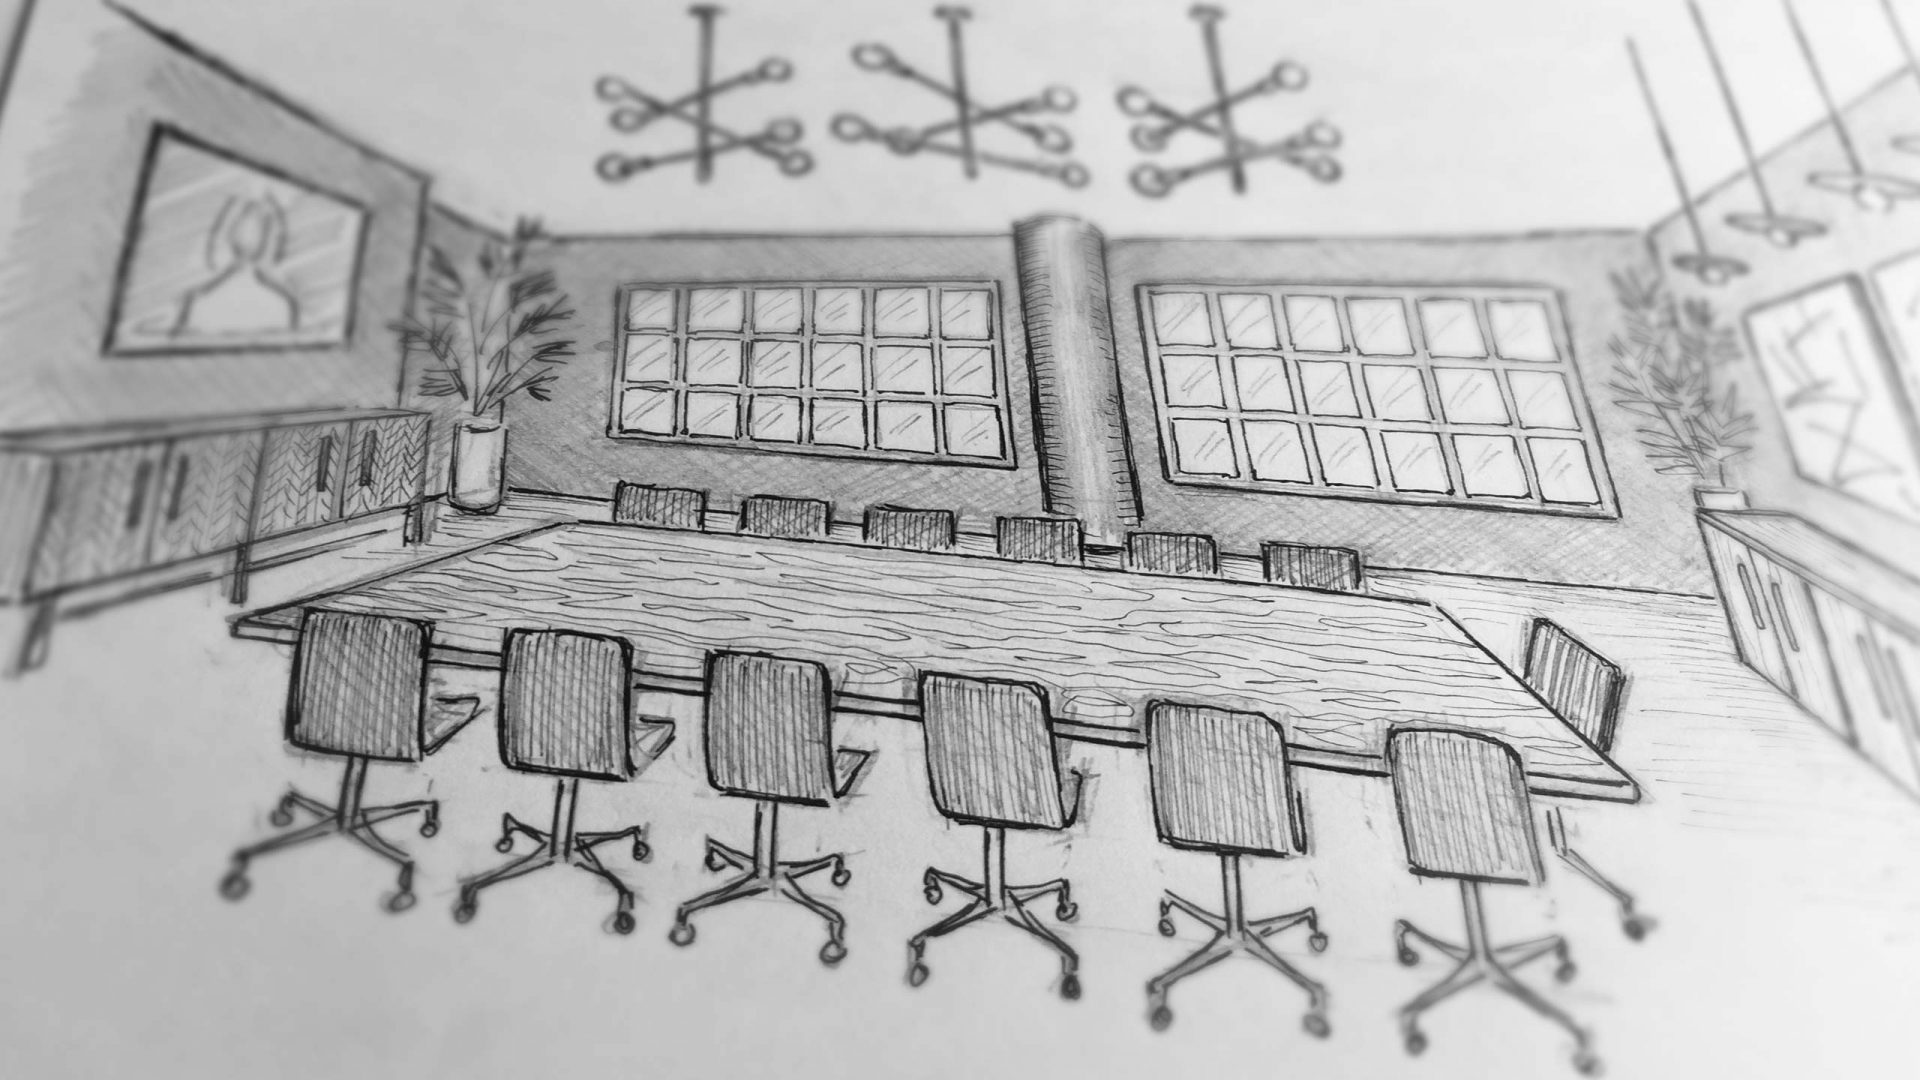 Sketch for an office design by Liqui showing the boardroom.